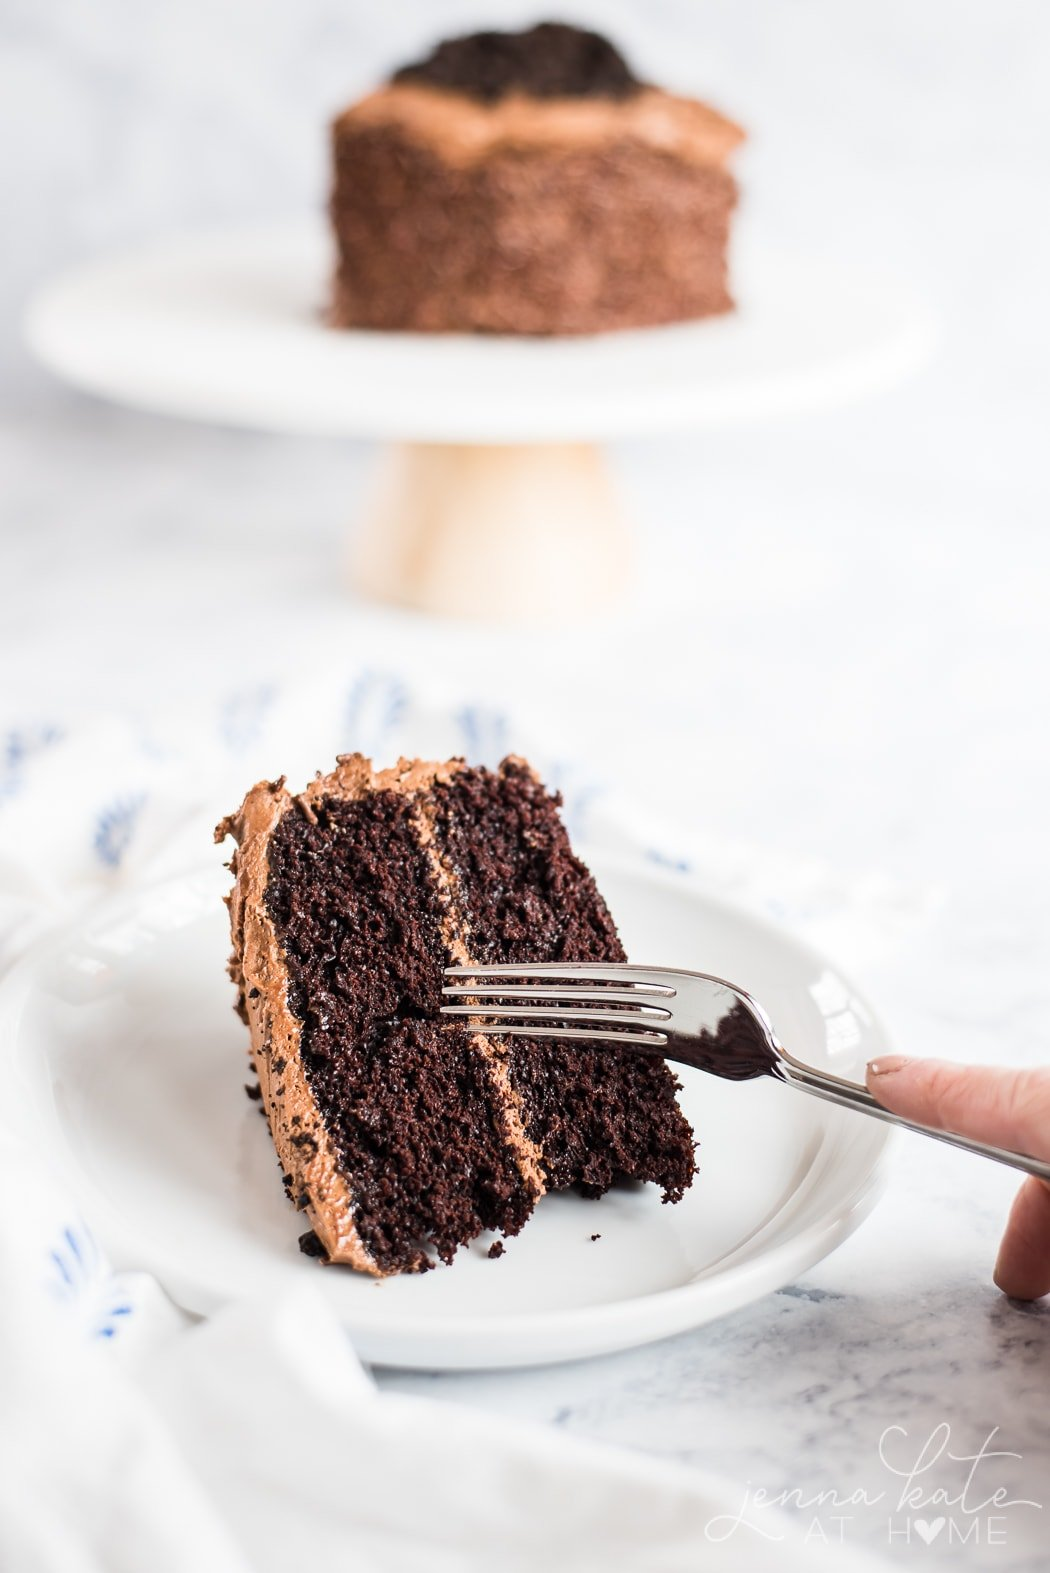 Fork cutting in to chocolate birthday cake.